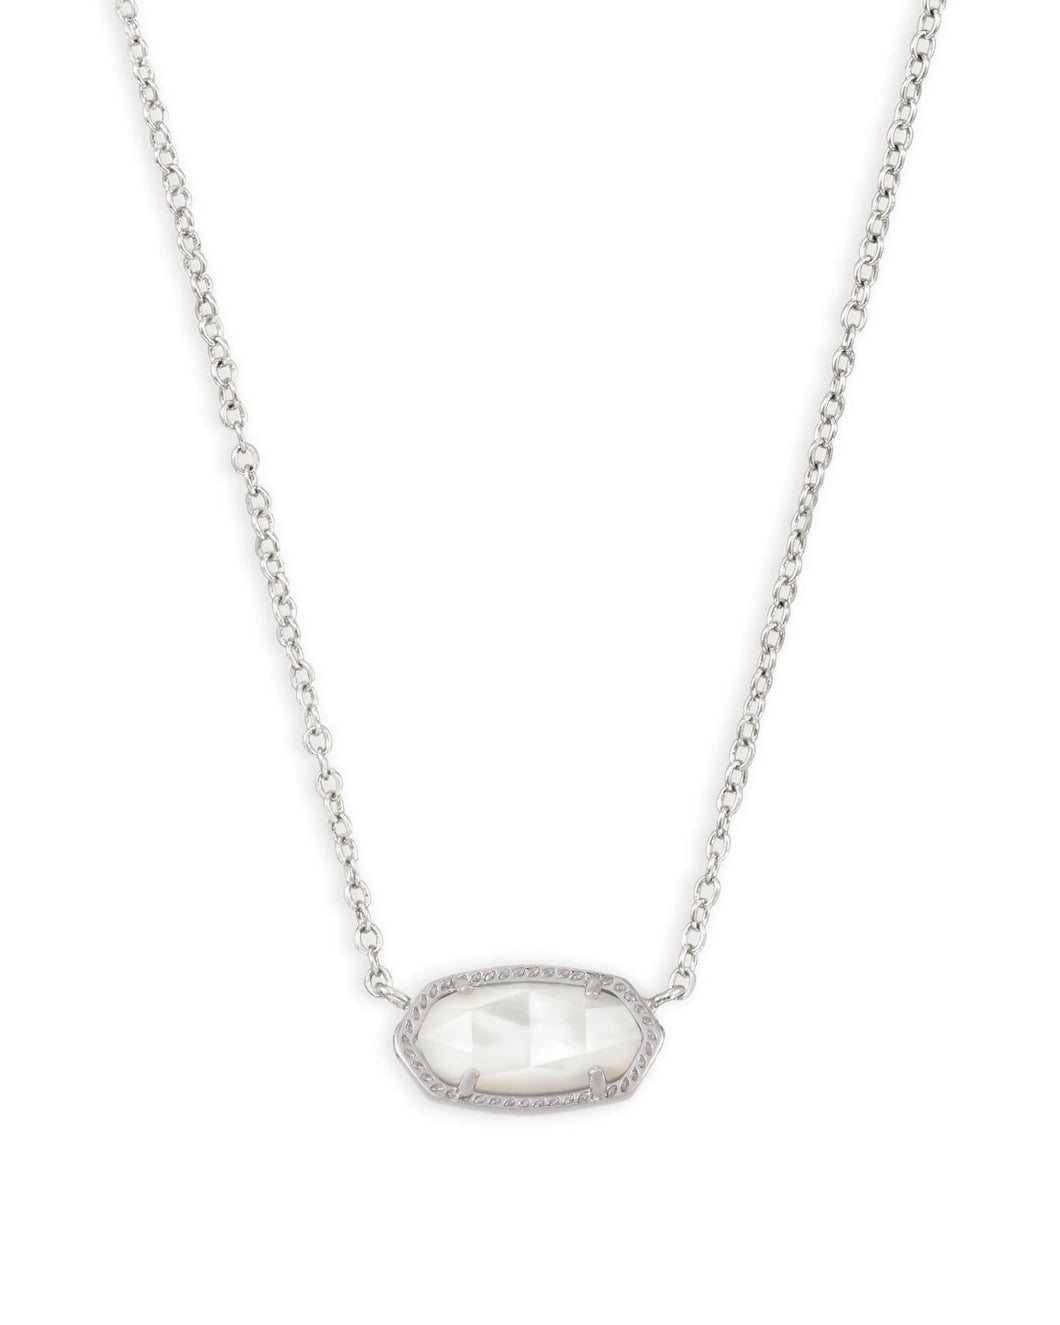 Kendra Scott Elisa Silver Pendant Necklace in Ivory Mother of Pearl